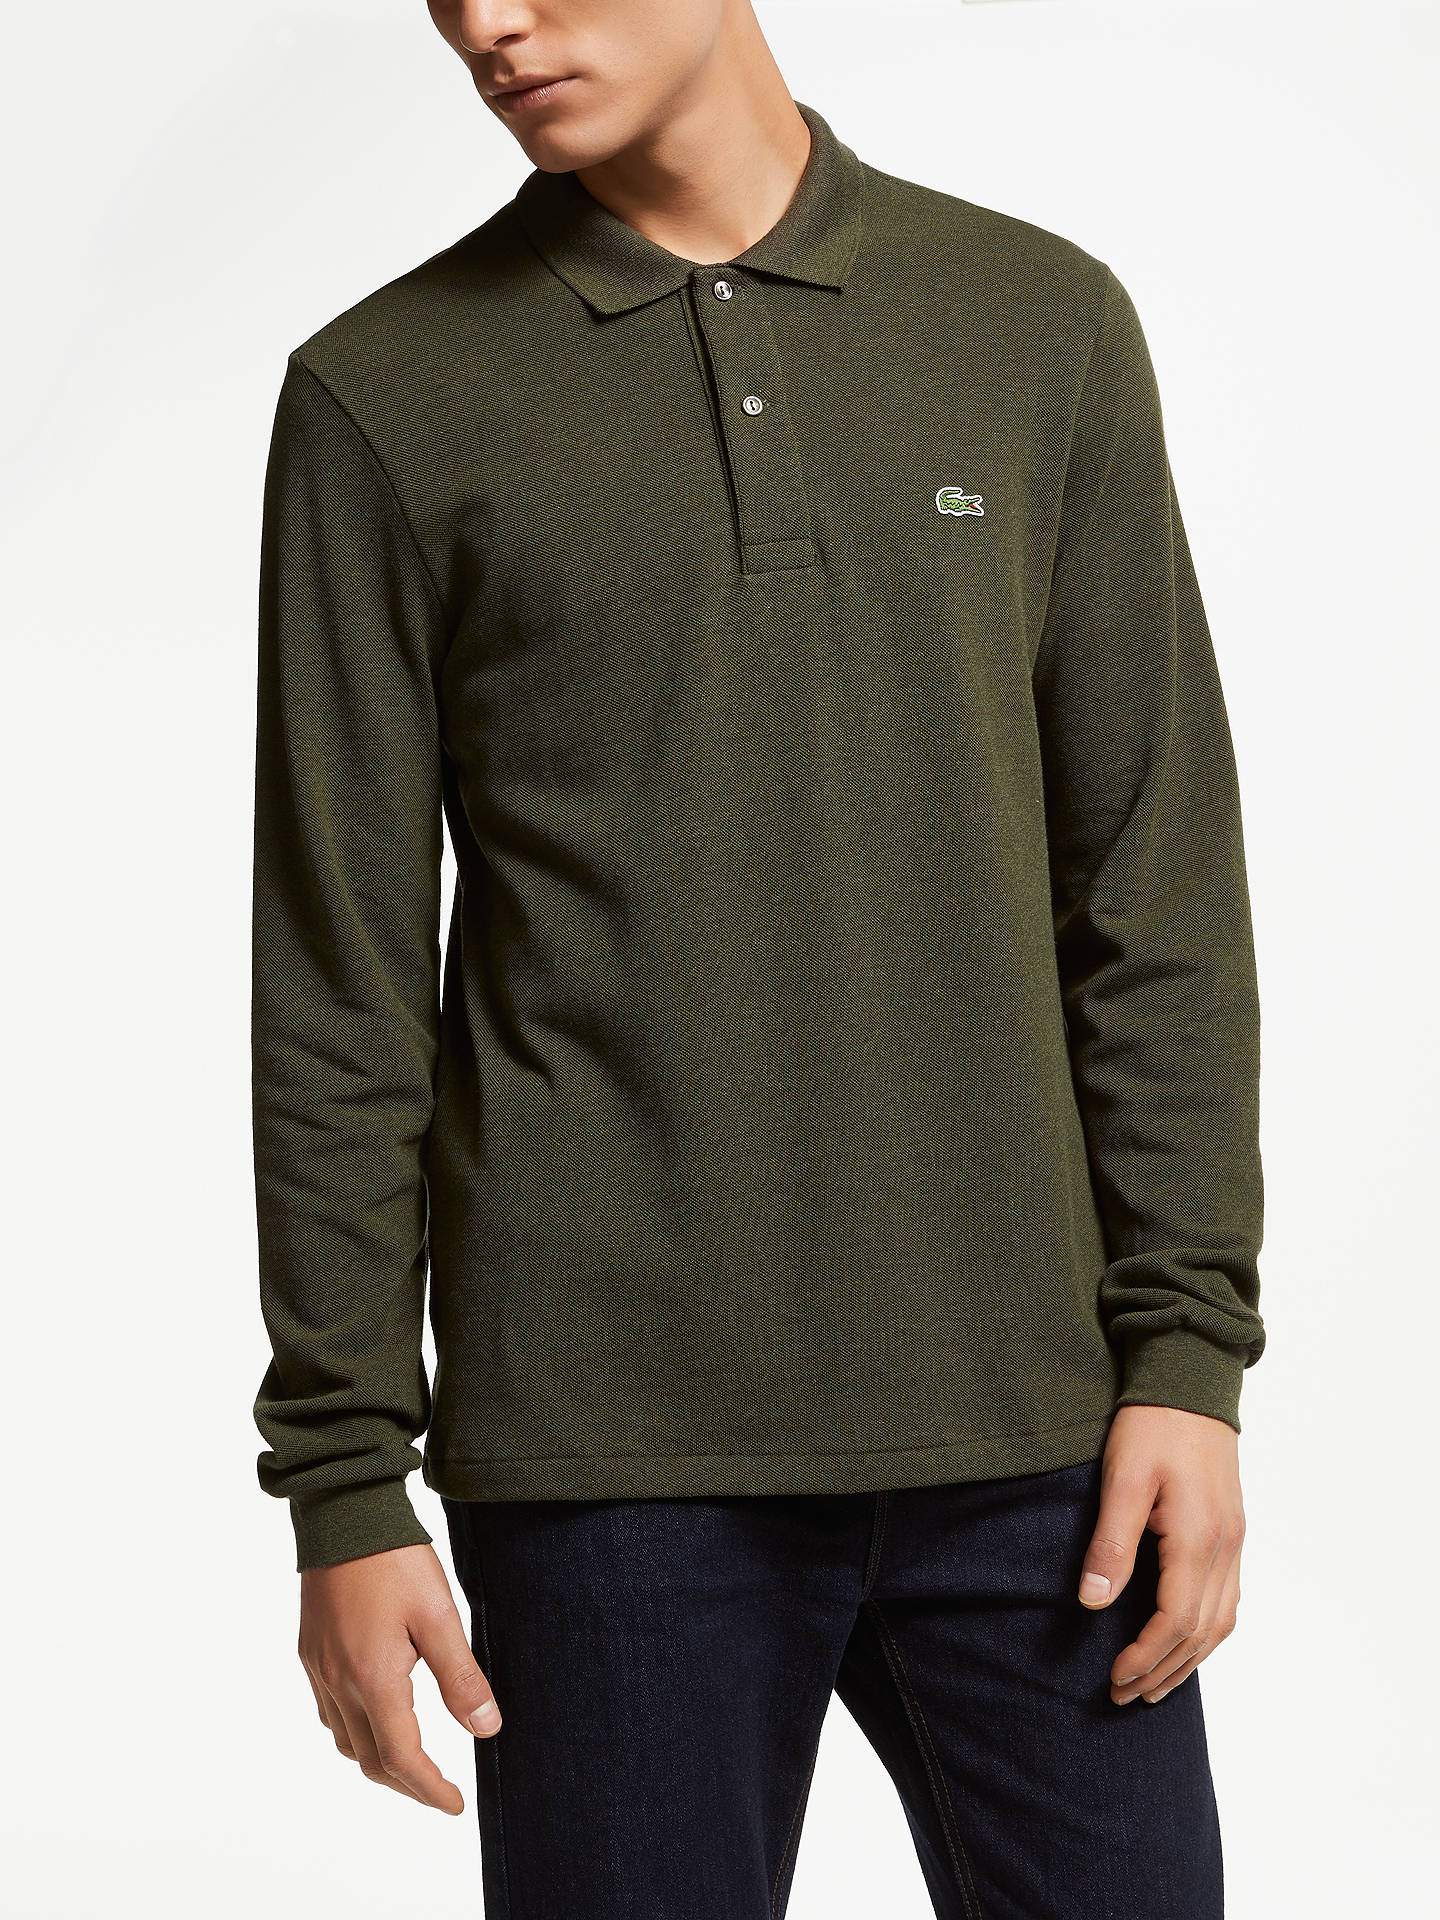 28856233907dff Buy Lacoste L.13.13 Long Sleeve Marl Polo Shirt